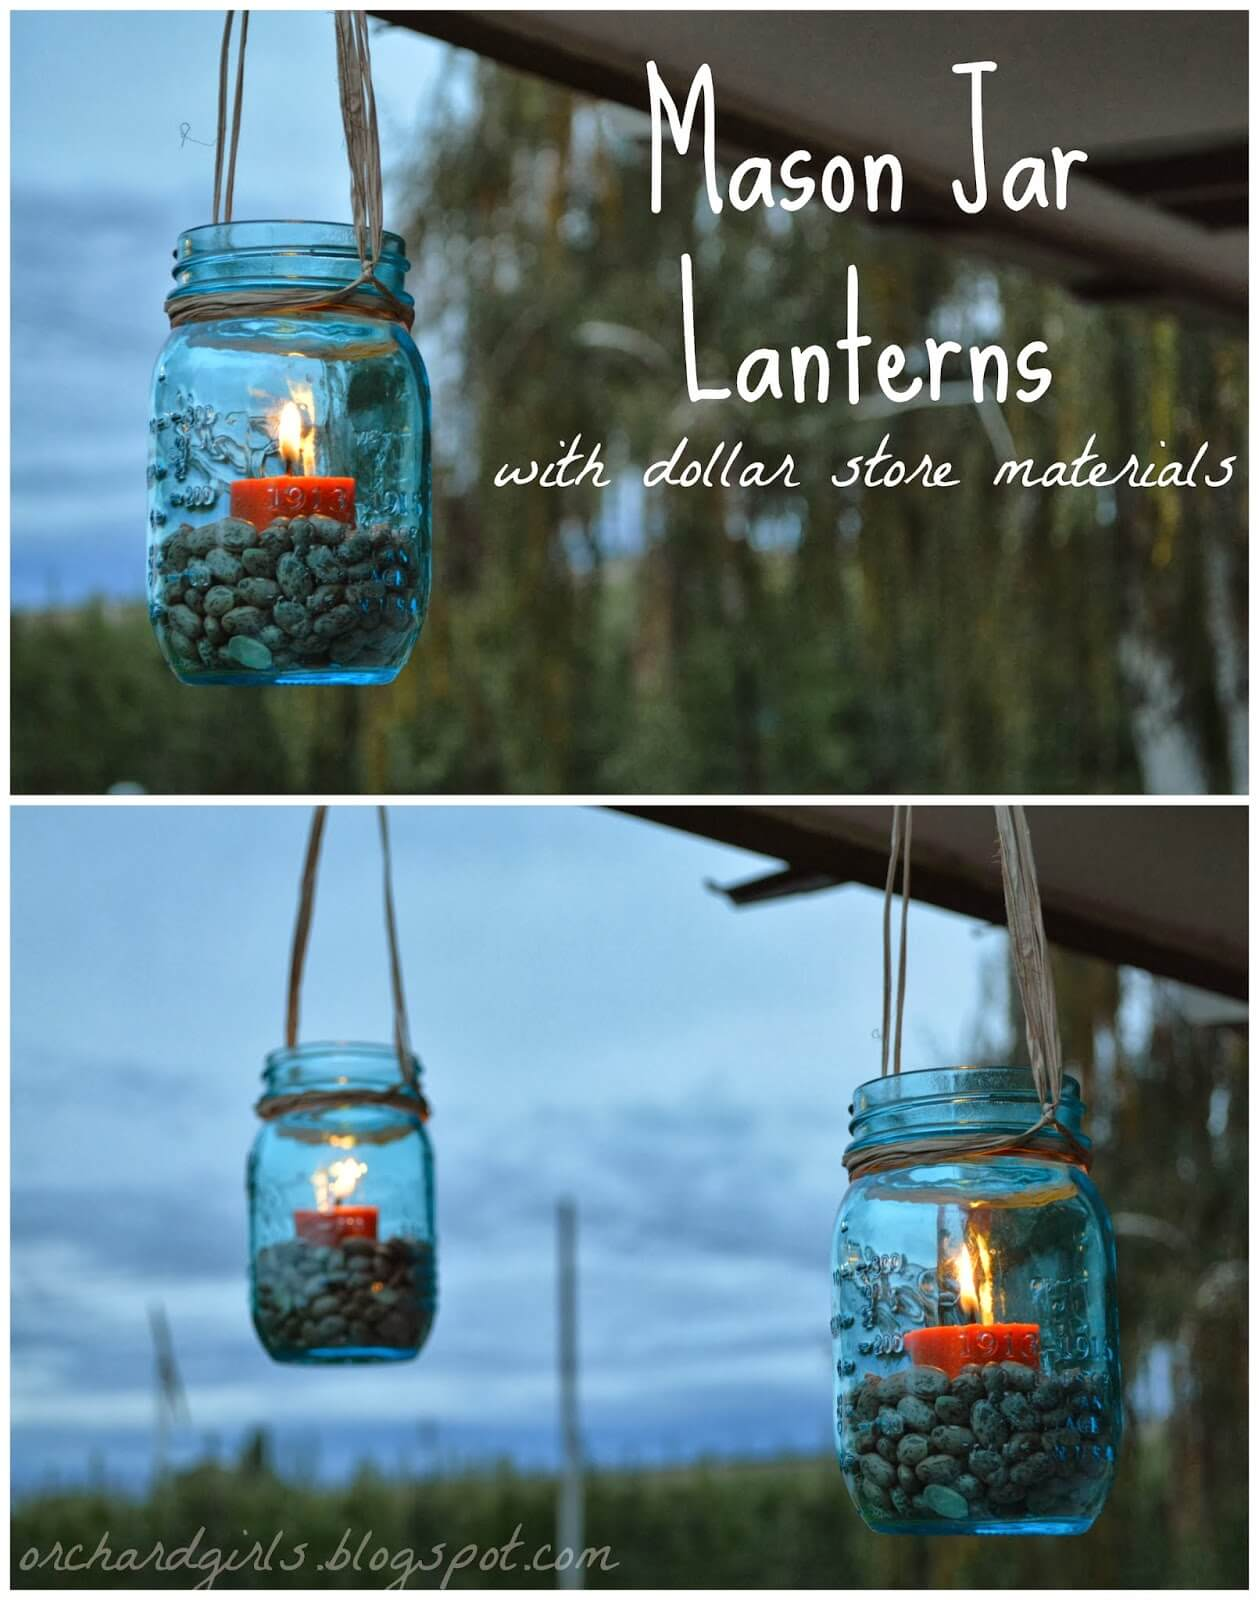 Inexpensive DIY Mason Jar Lanterns